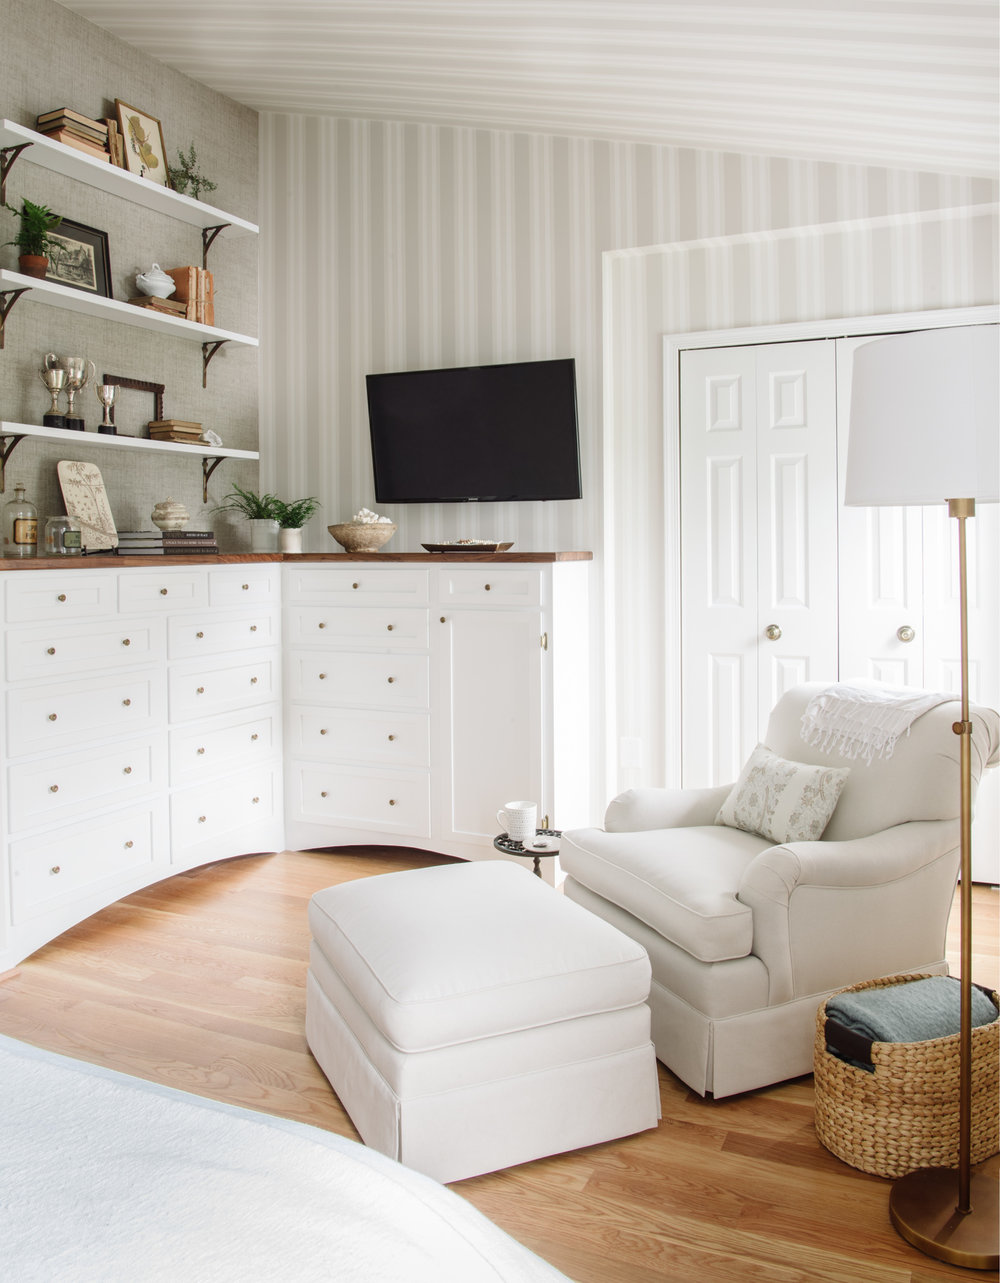 built ins by Alison Giese Interiors.jpg